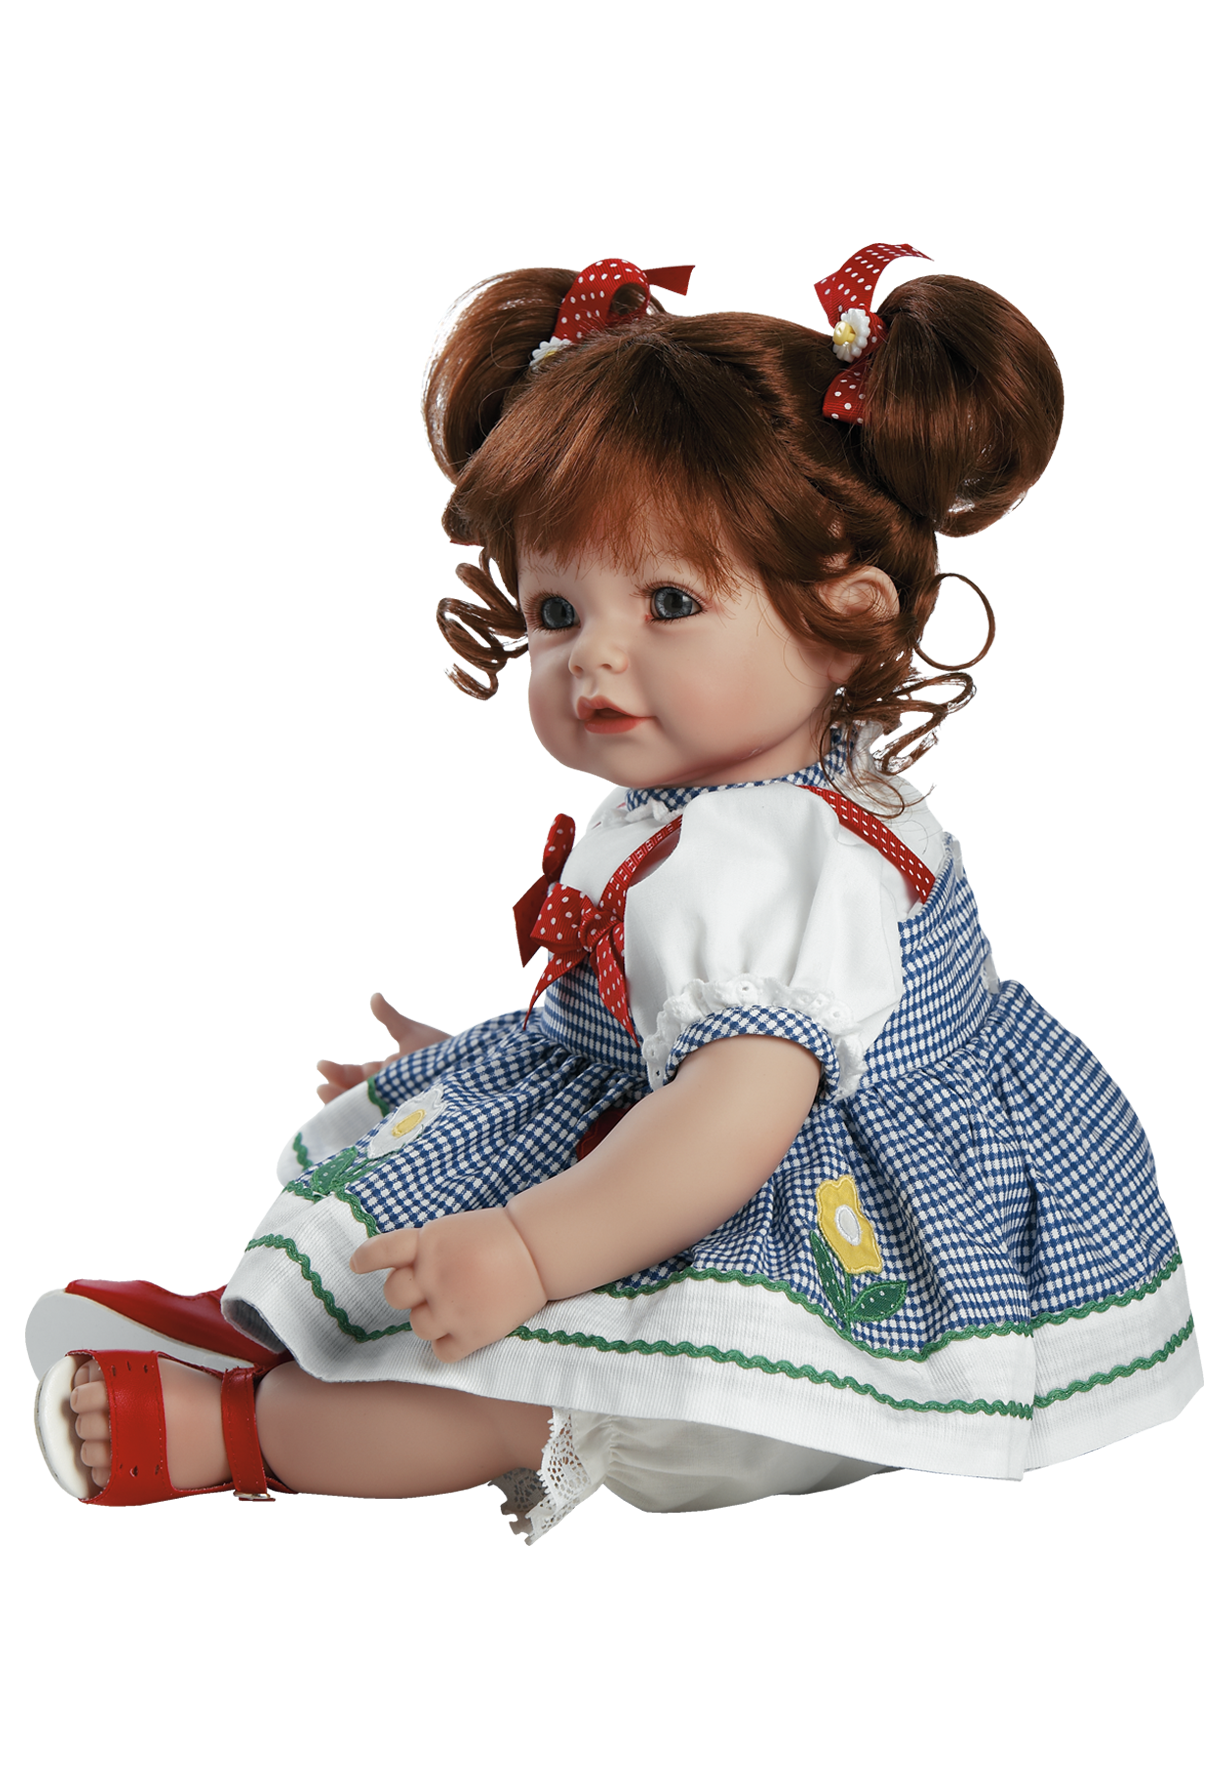 Adora 20 inch Toddler Baby Doll for Kids Play Daisy